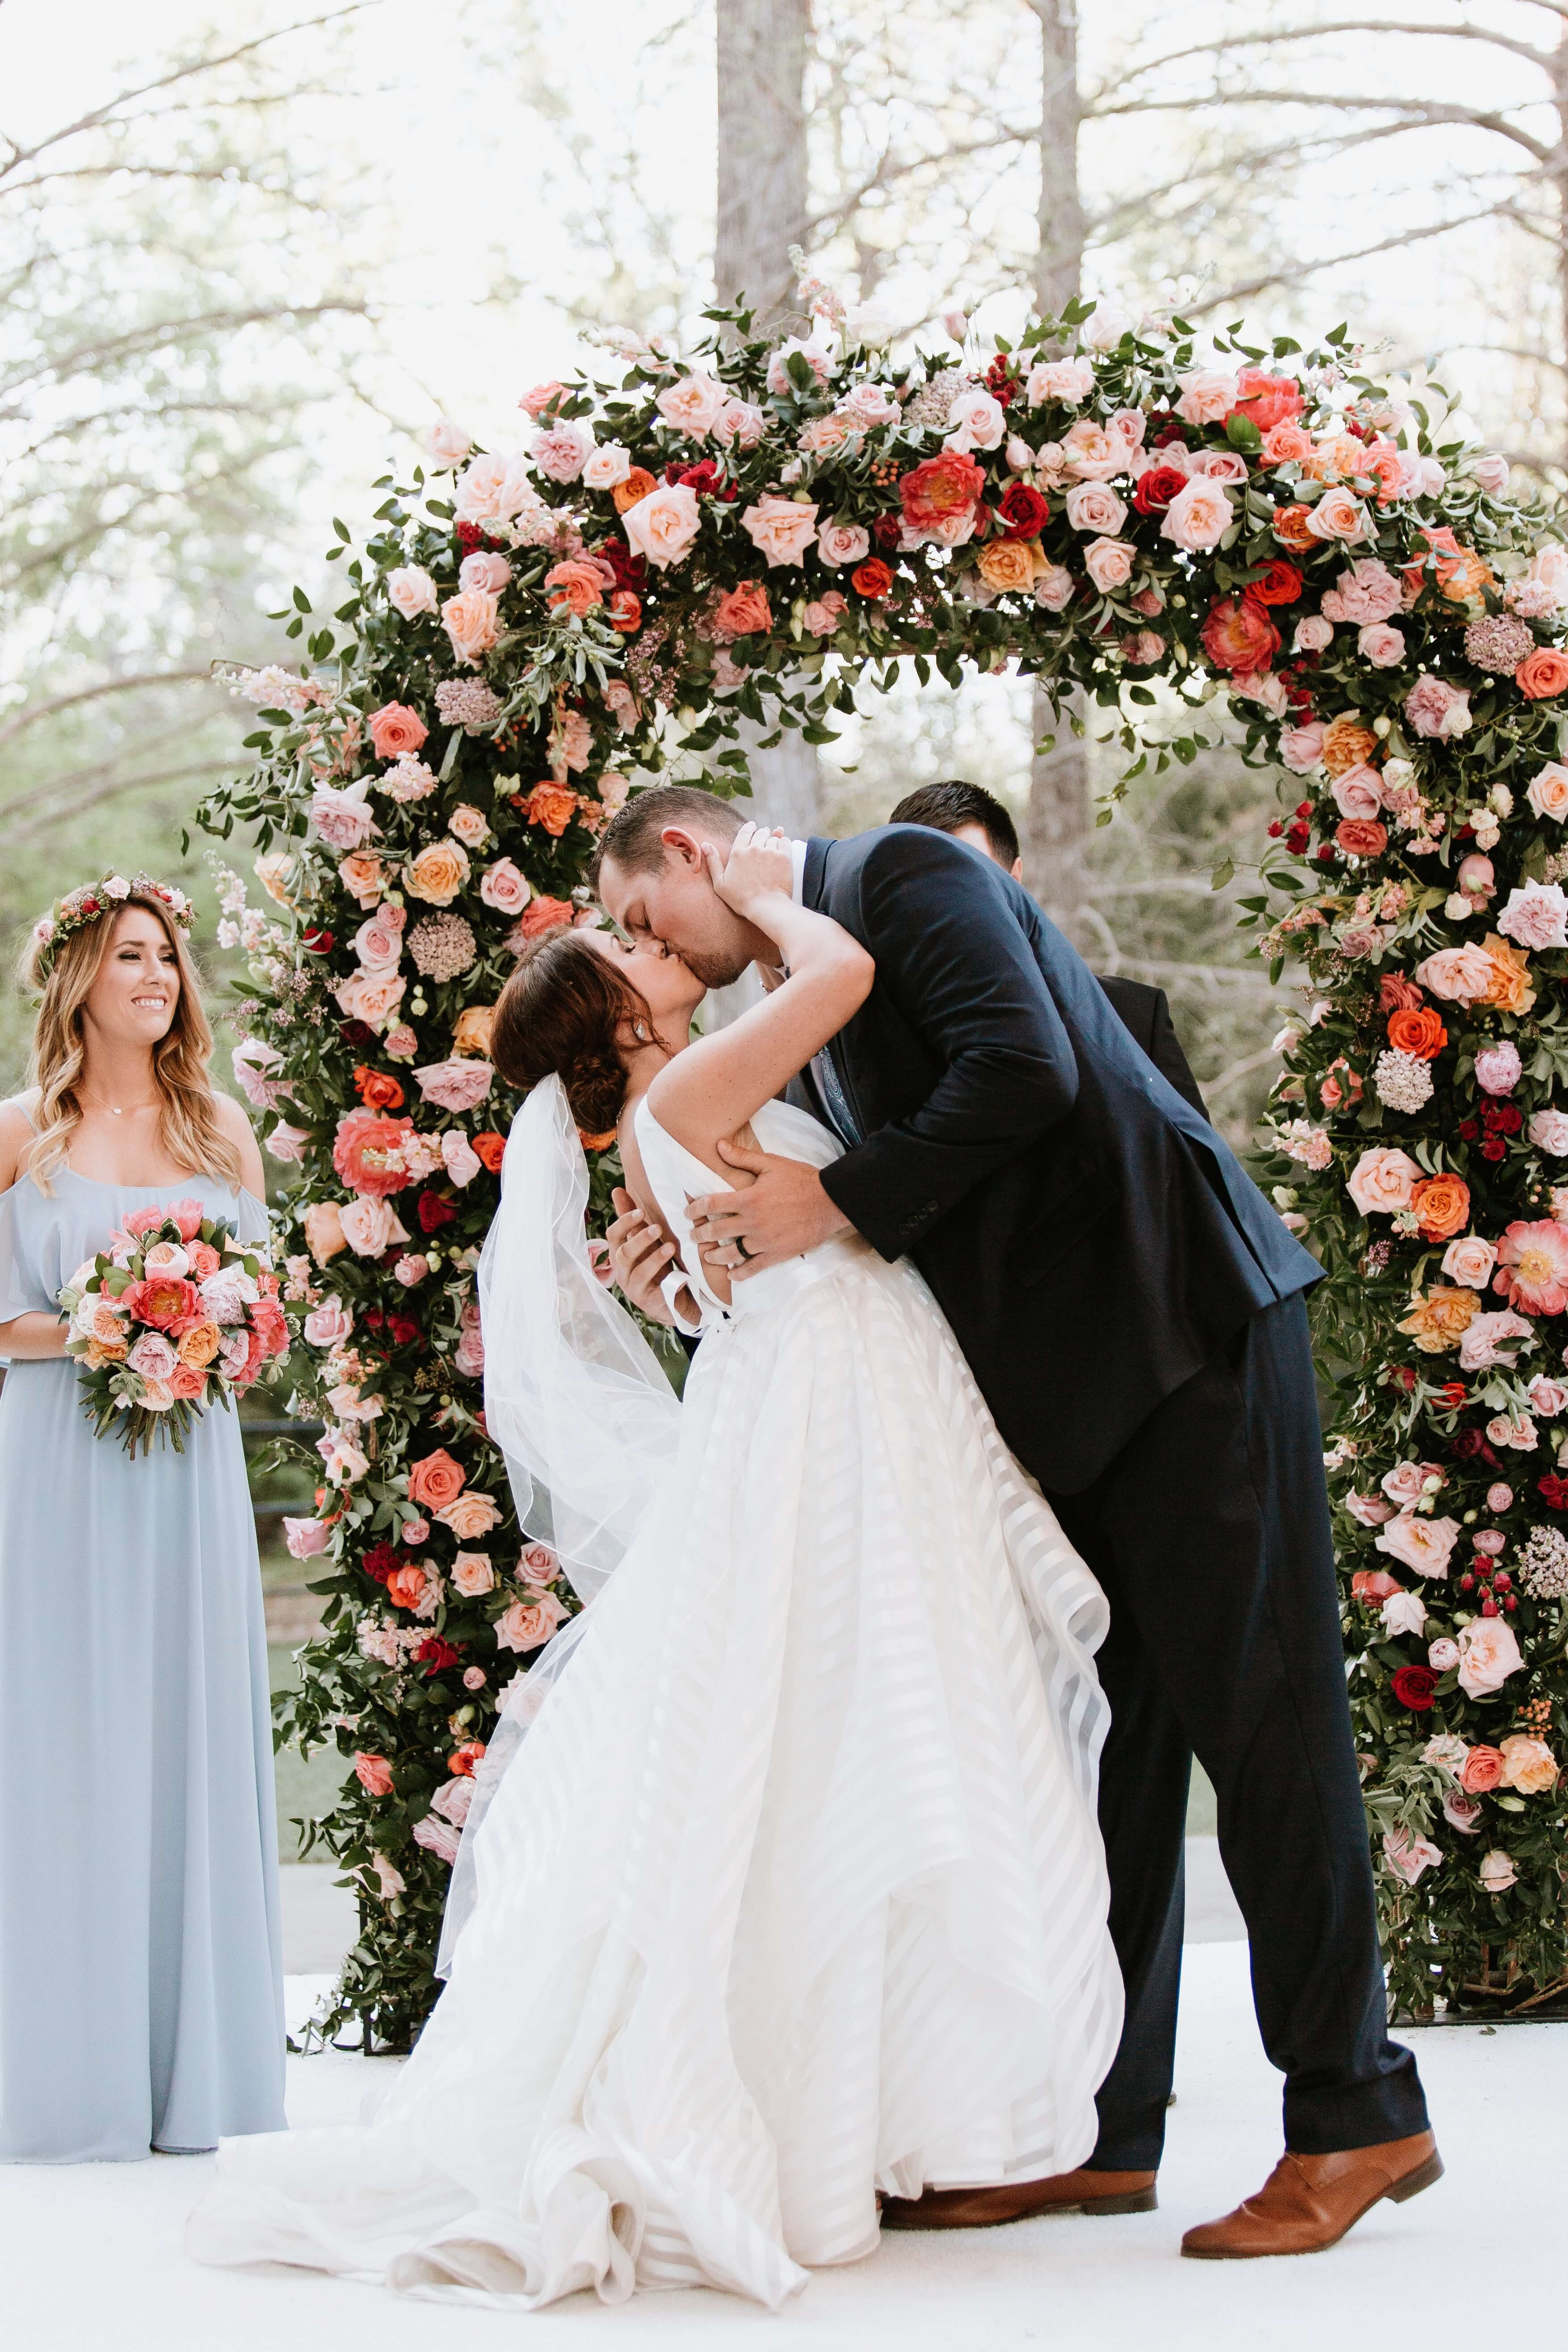 Colorful Wedding at the Fort Worth Zoo - DFW Events, Inc.